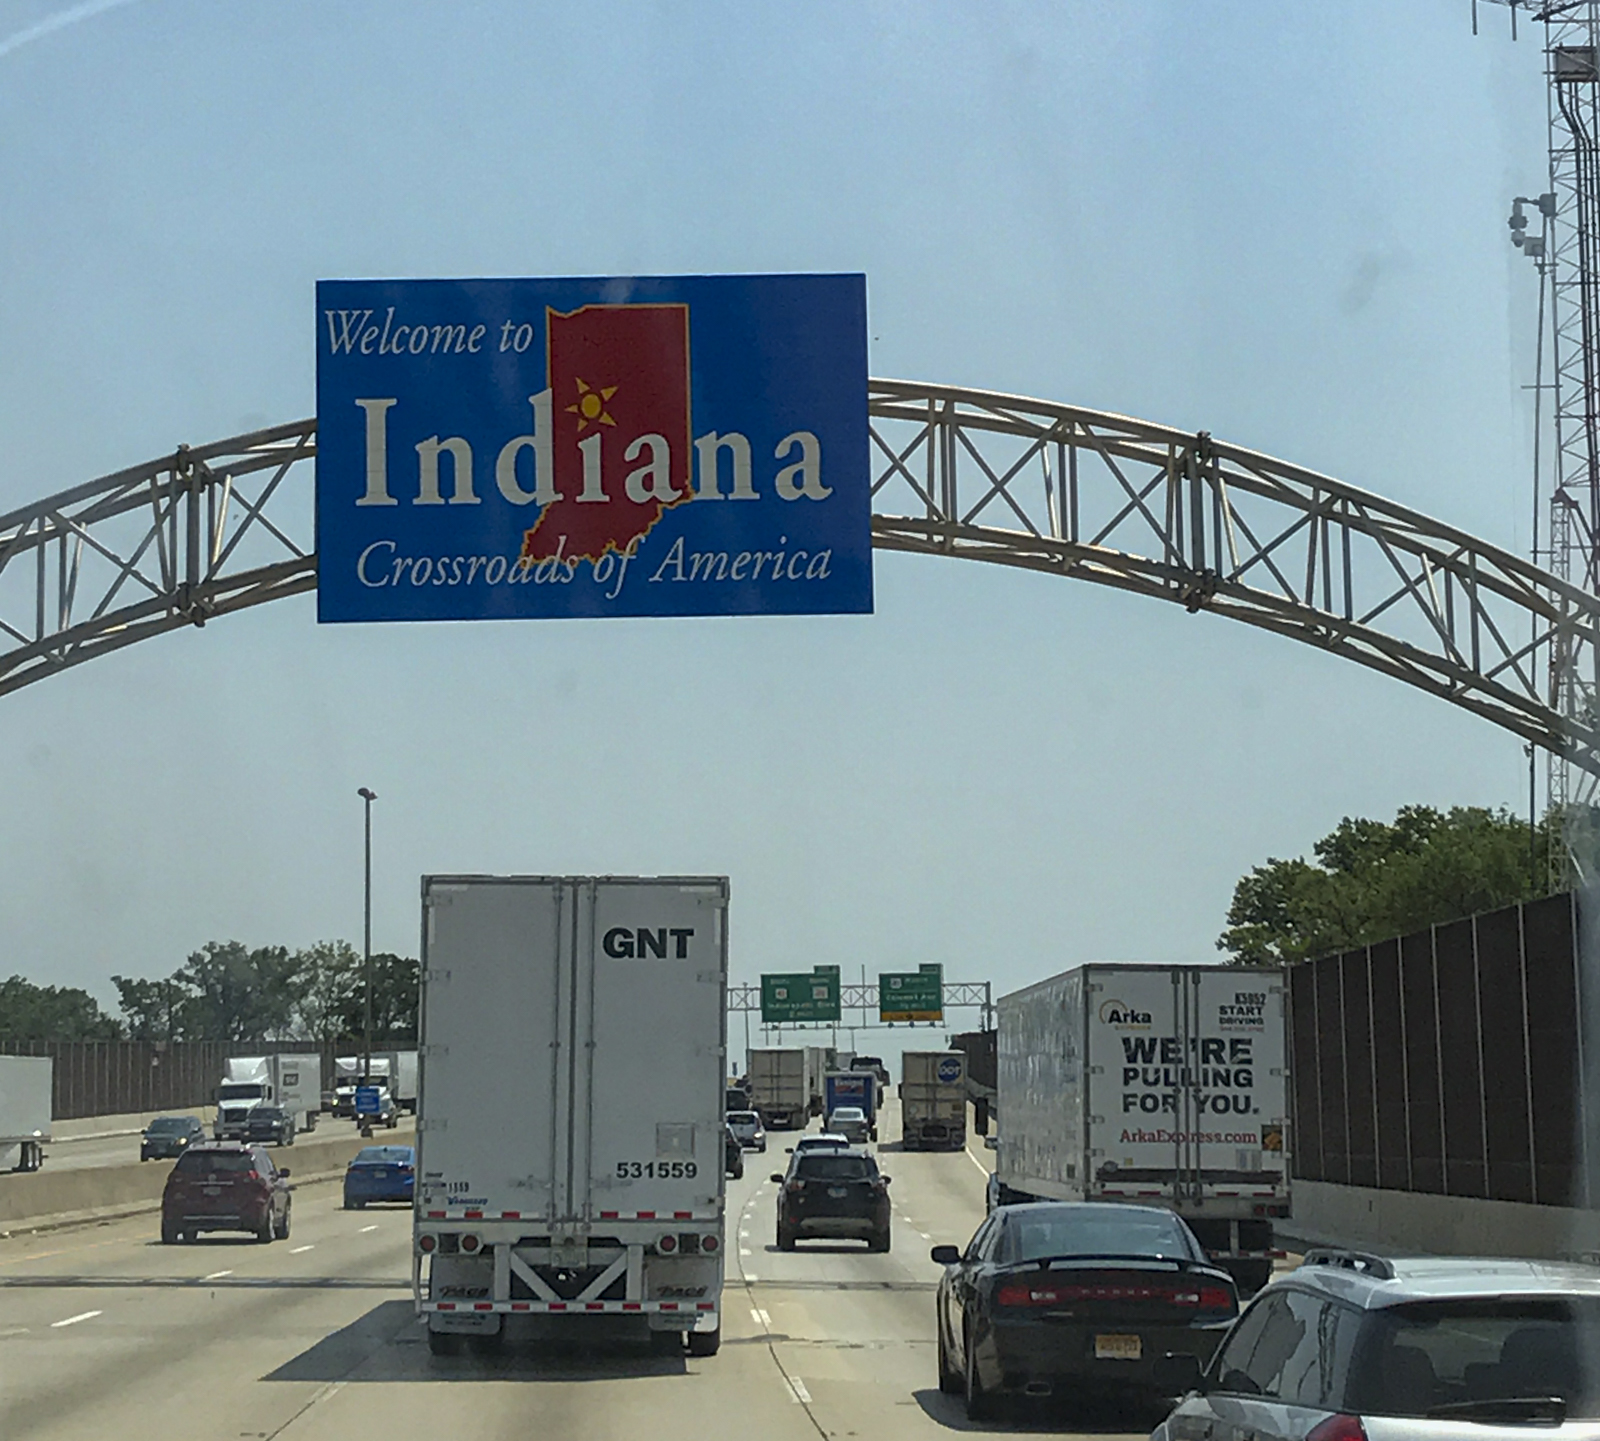 Indiana, another state line